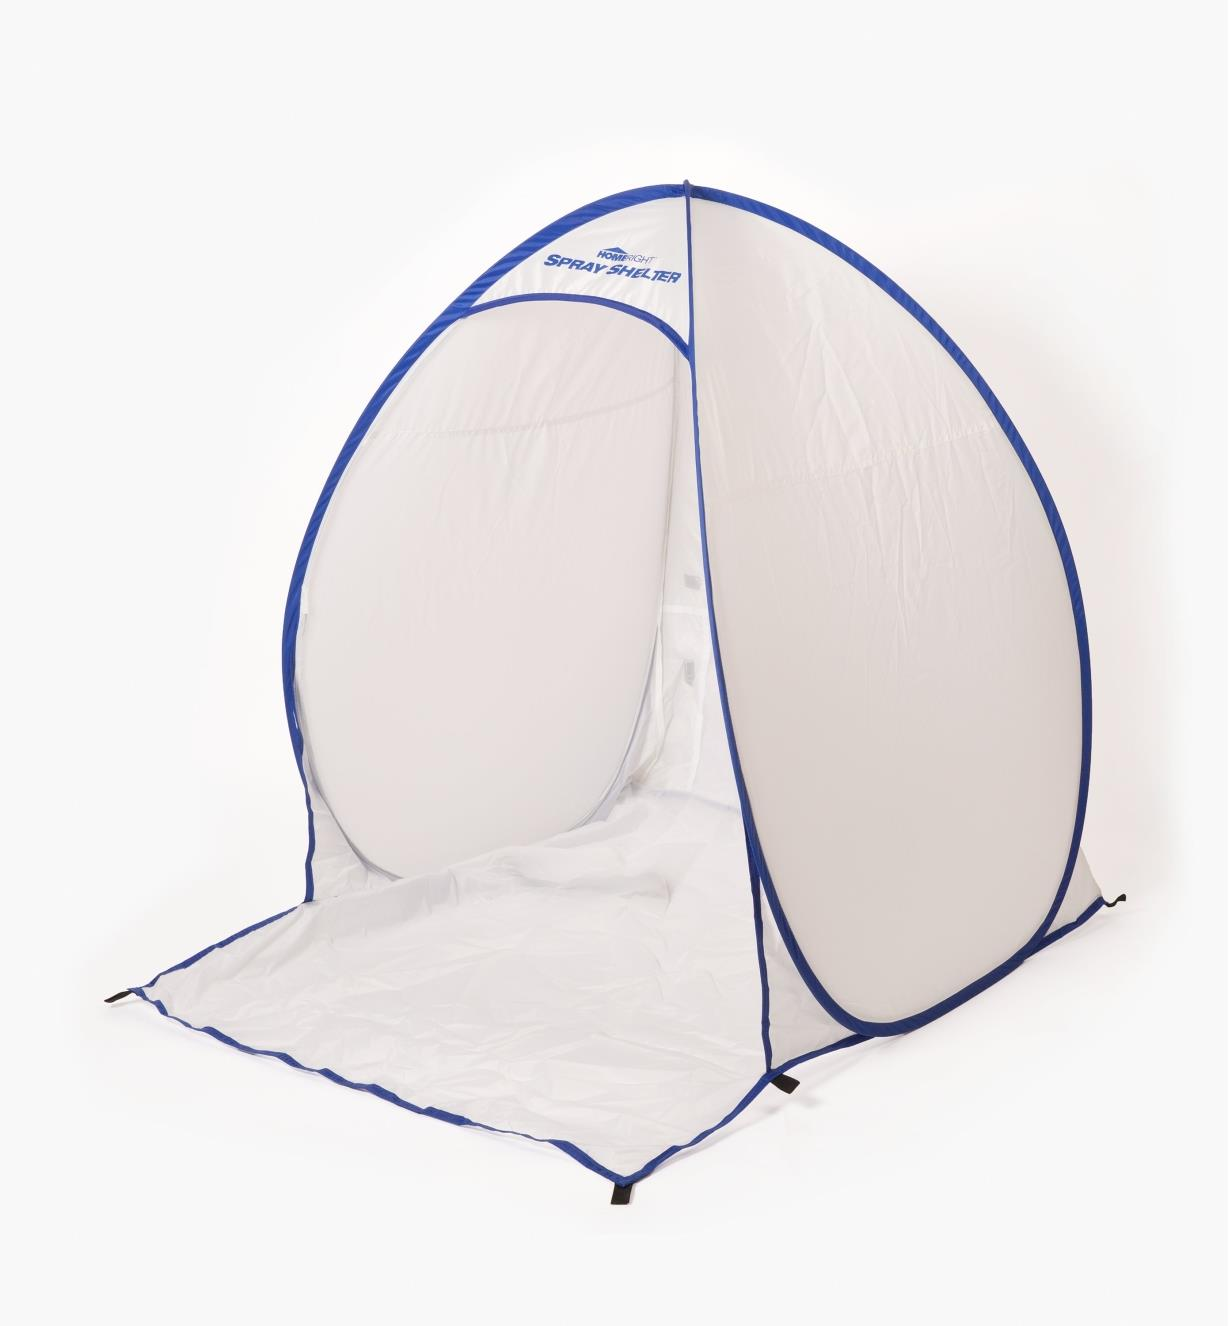 "03K0310 - Small Portable Spray Shelter (35"" x 30"" x 39"")"